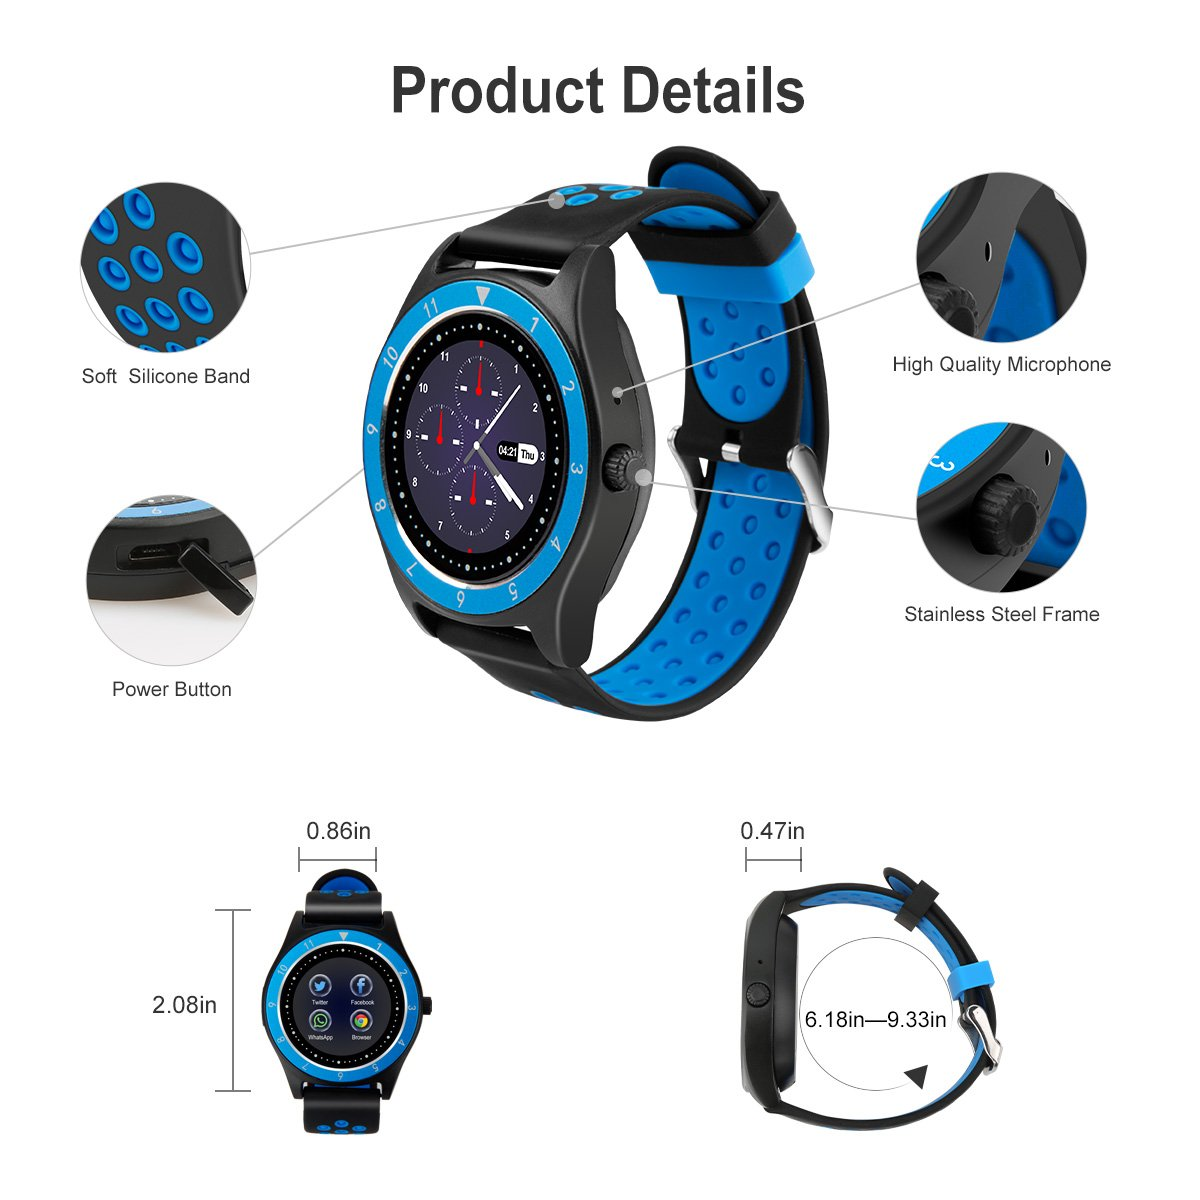 Smart Watch,Bluetooth Smartwatch Touch Screen Wrist Watch with Camera/SIM Card Slot,Waterproof Phone Smart Watch Sports Fitness Tracker for Android iPhone IOS Phones Samsung Huawei for Kids Women Men by Topffy (Image #7)